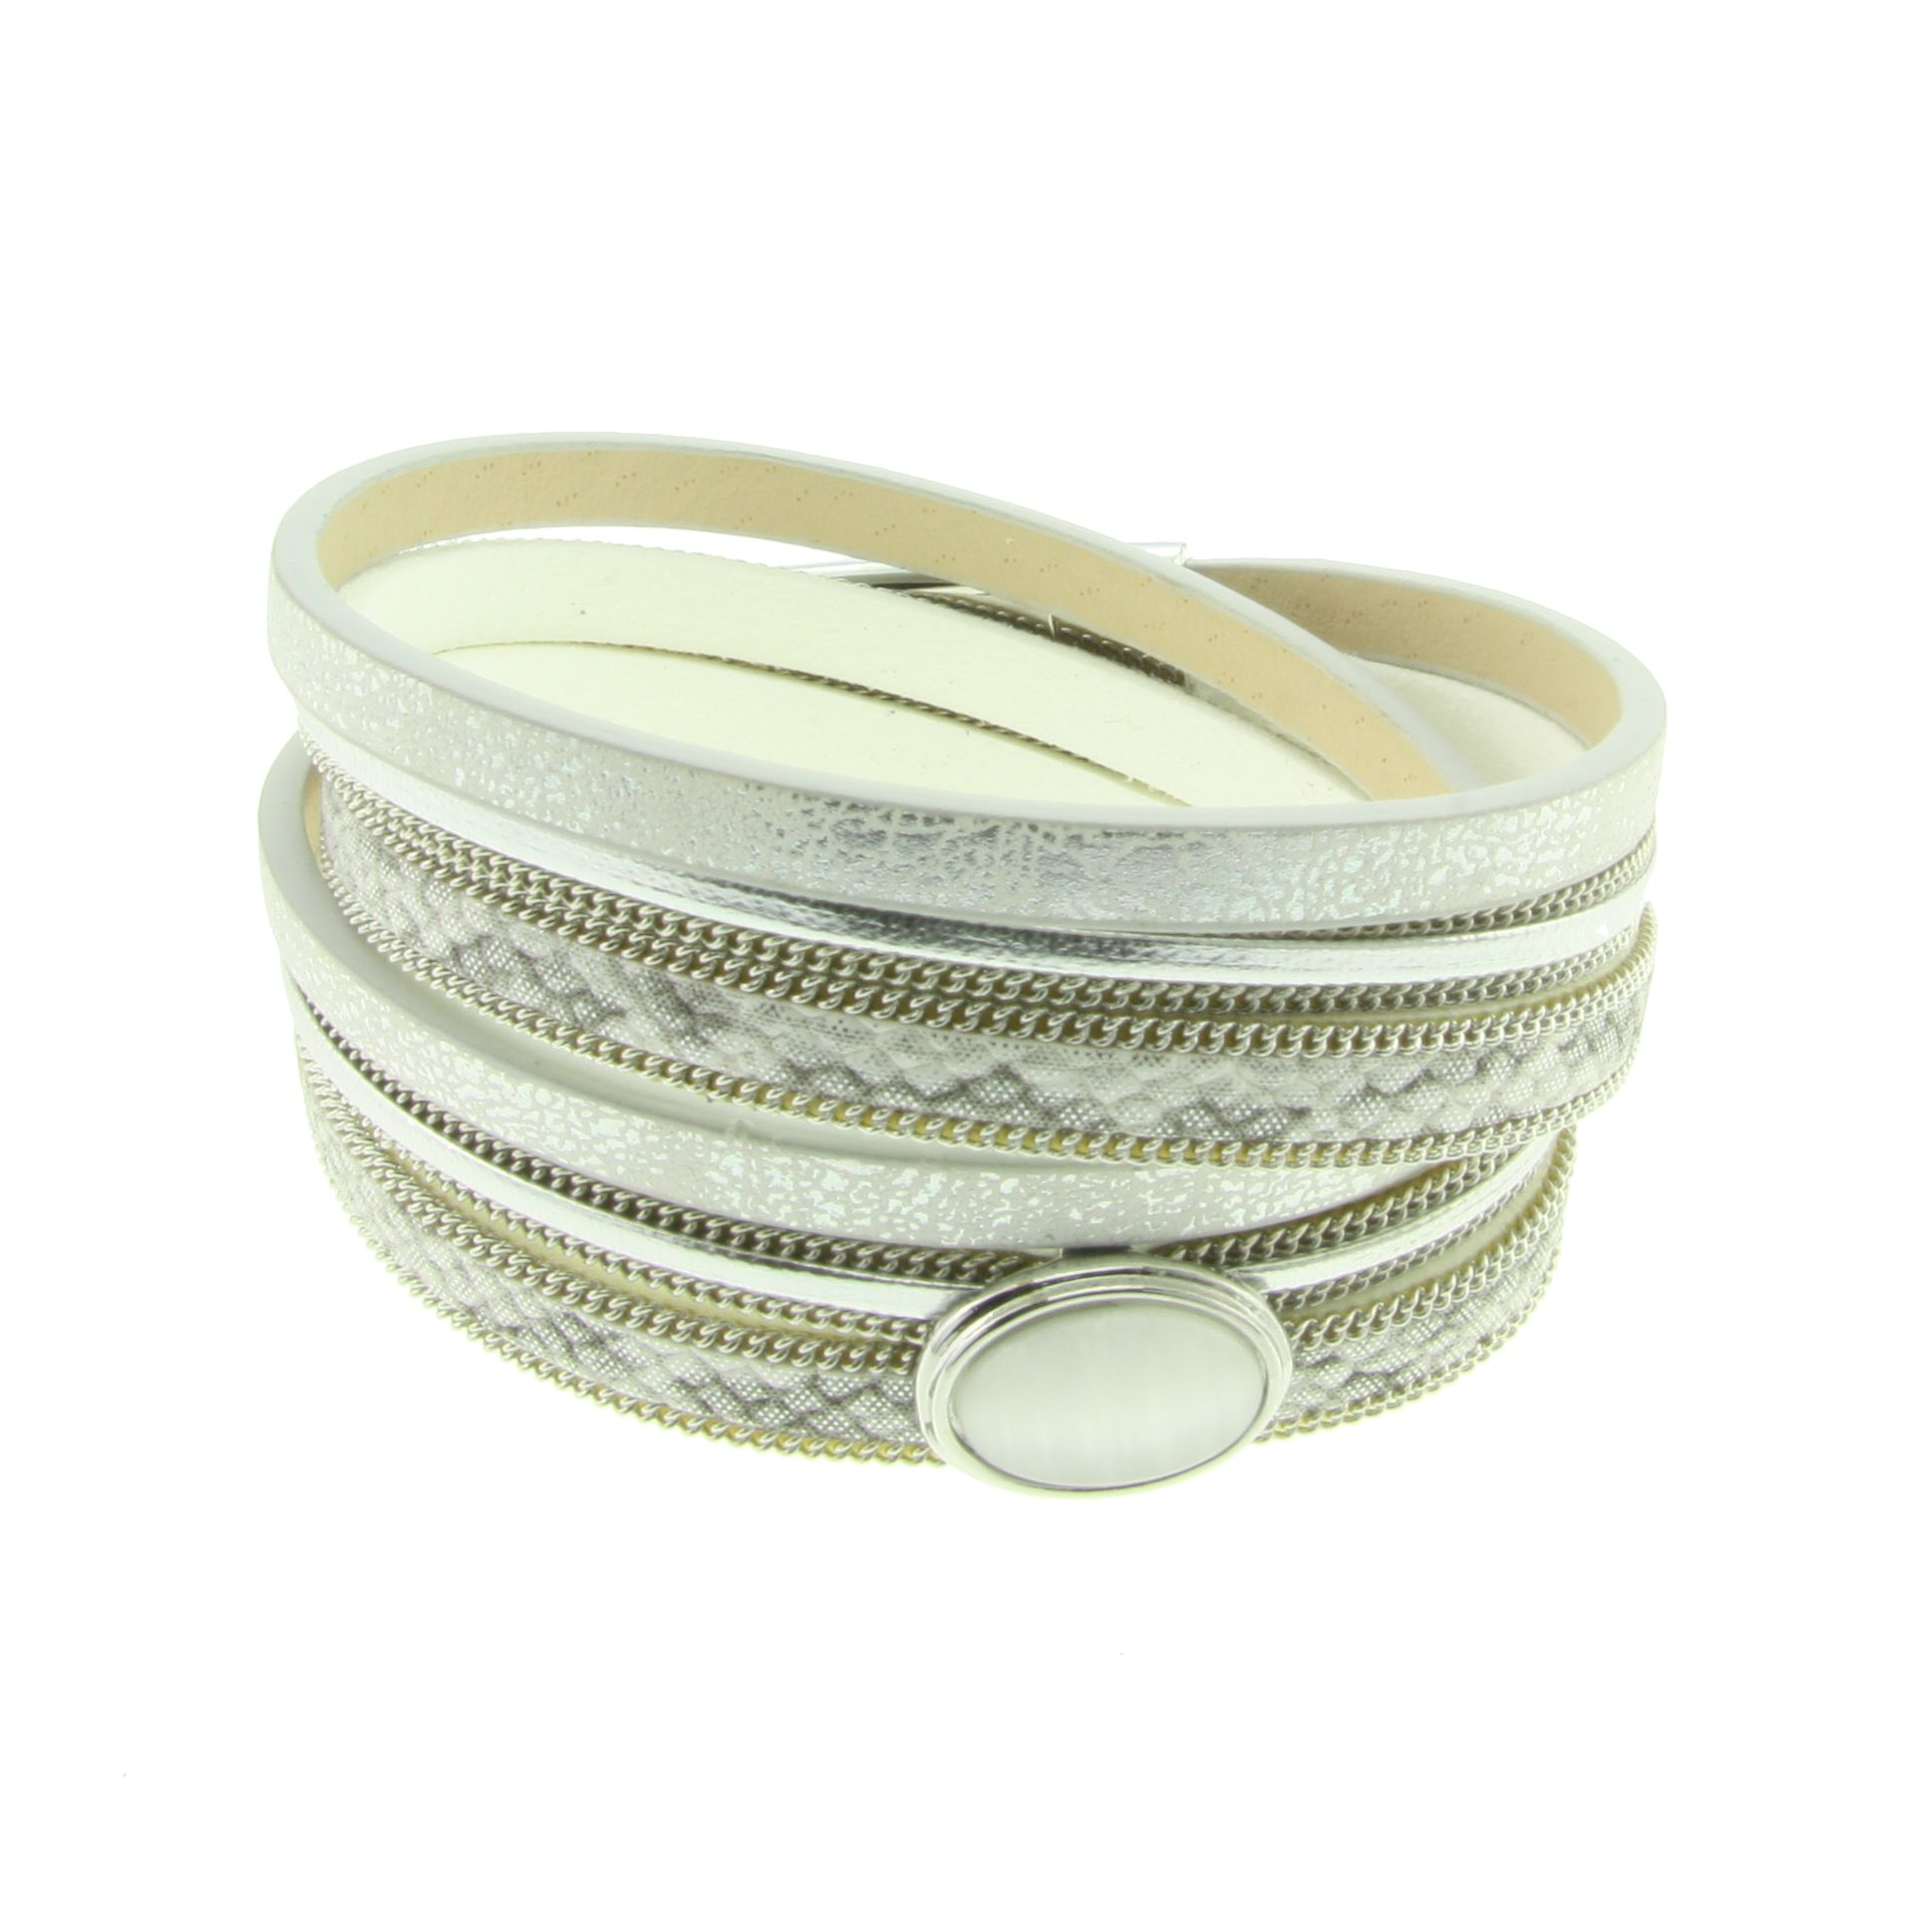 Magneet Armband Magneet Armband Classic Behave Sieraden Mode